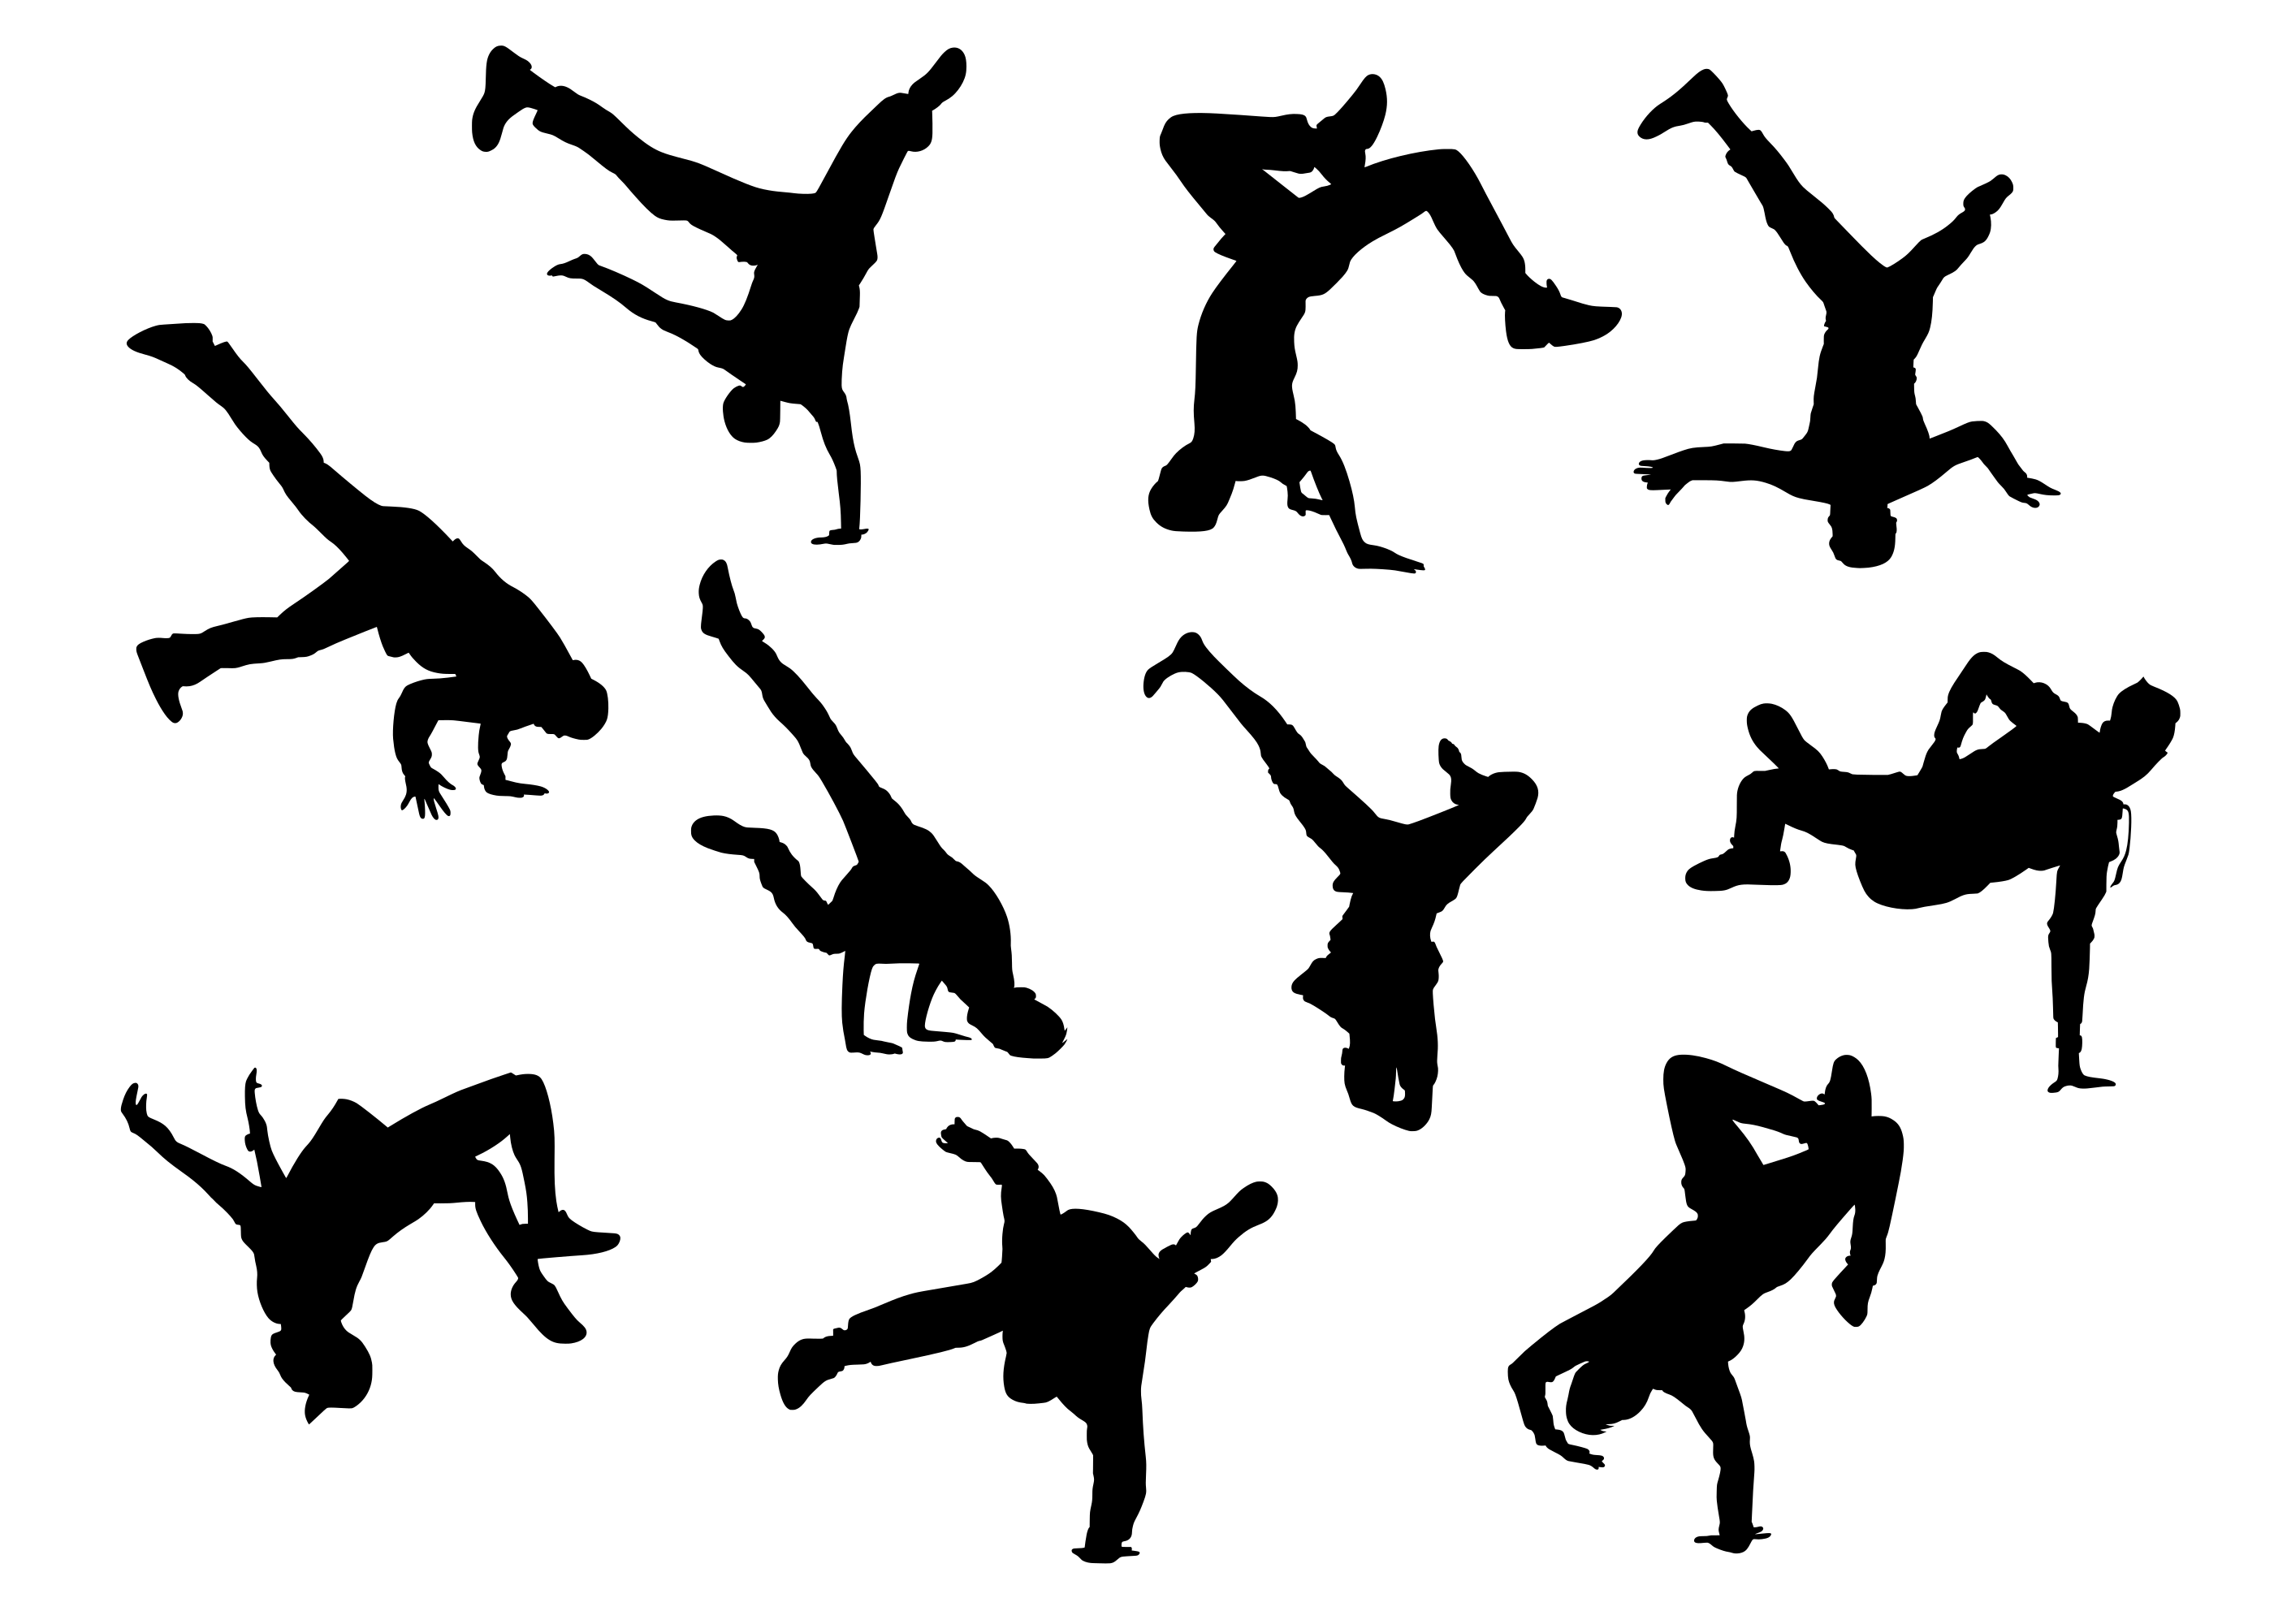 10-break-dance-silhouette-cover.png